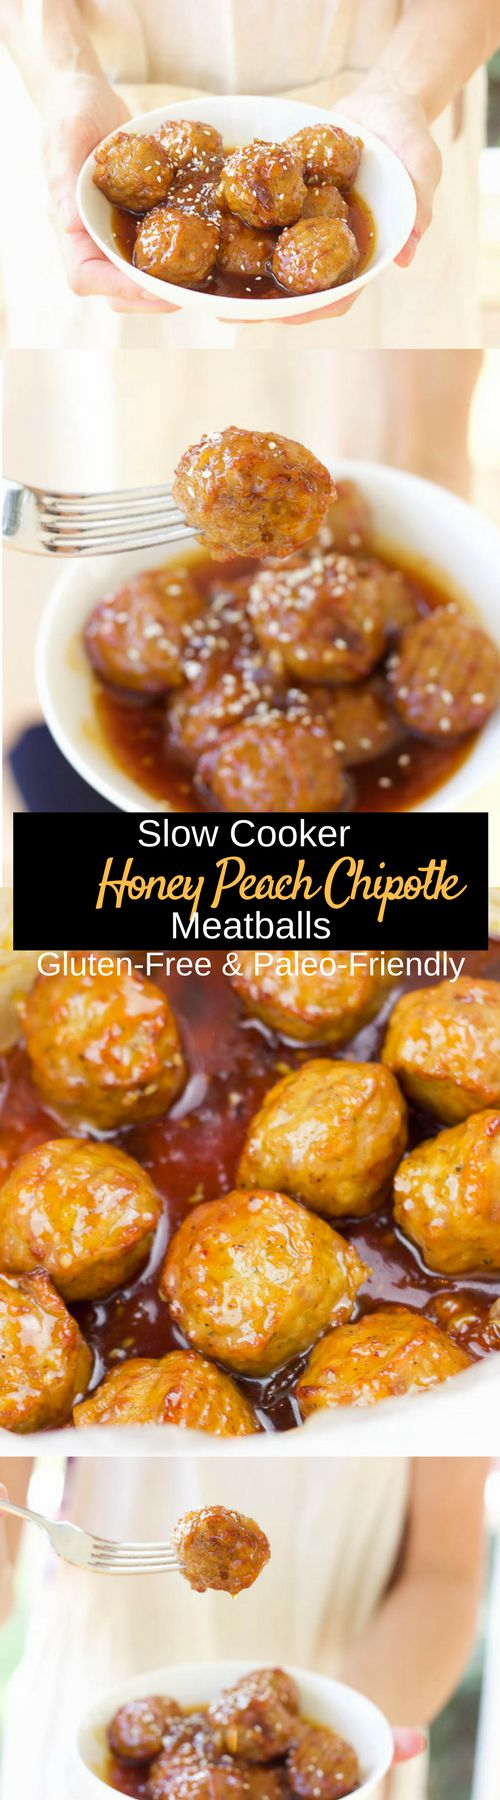 slow cooker honey peach chipotle meatballs gluten free paleo